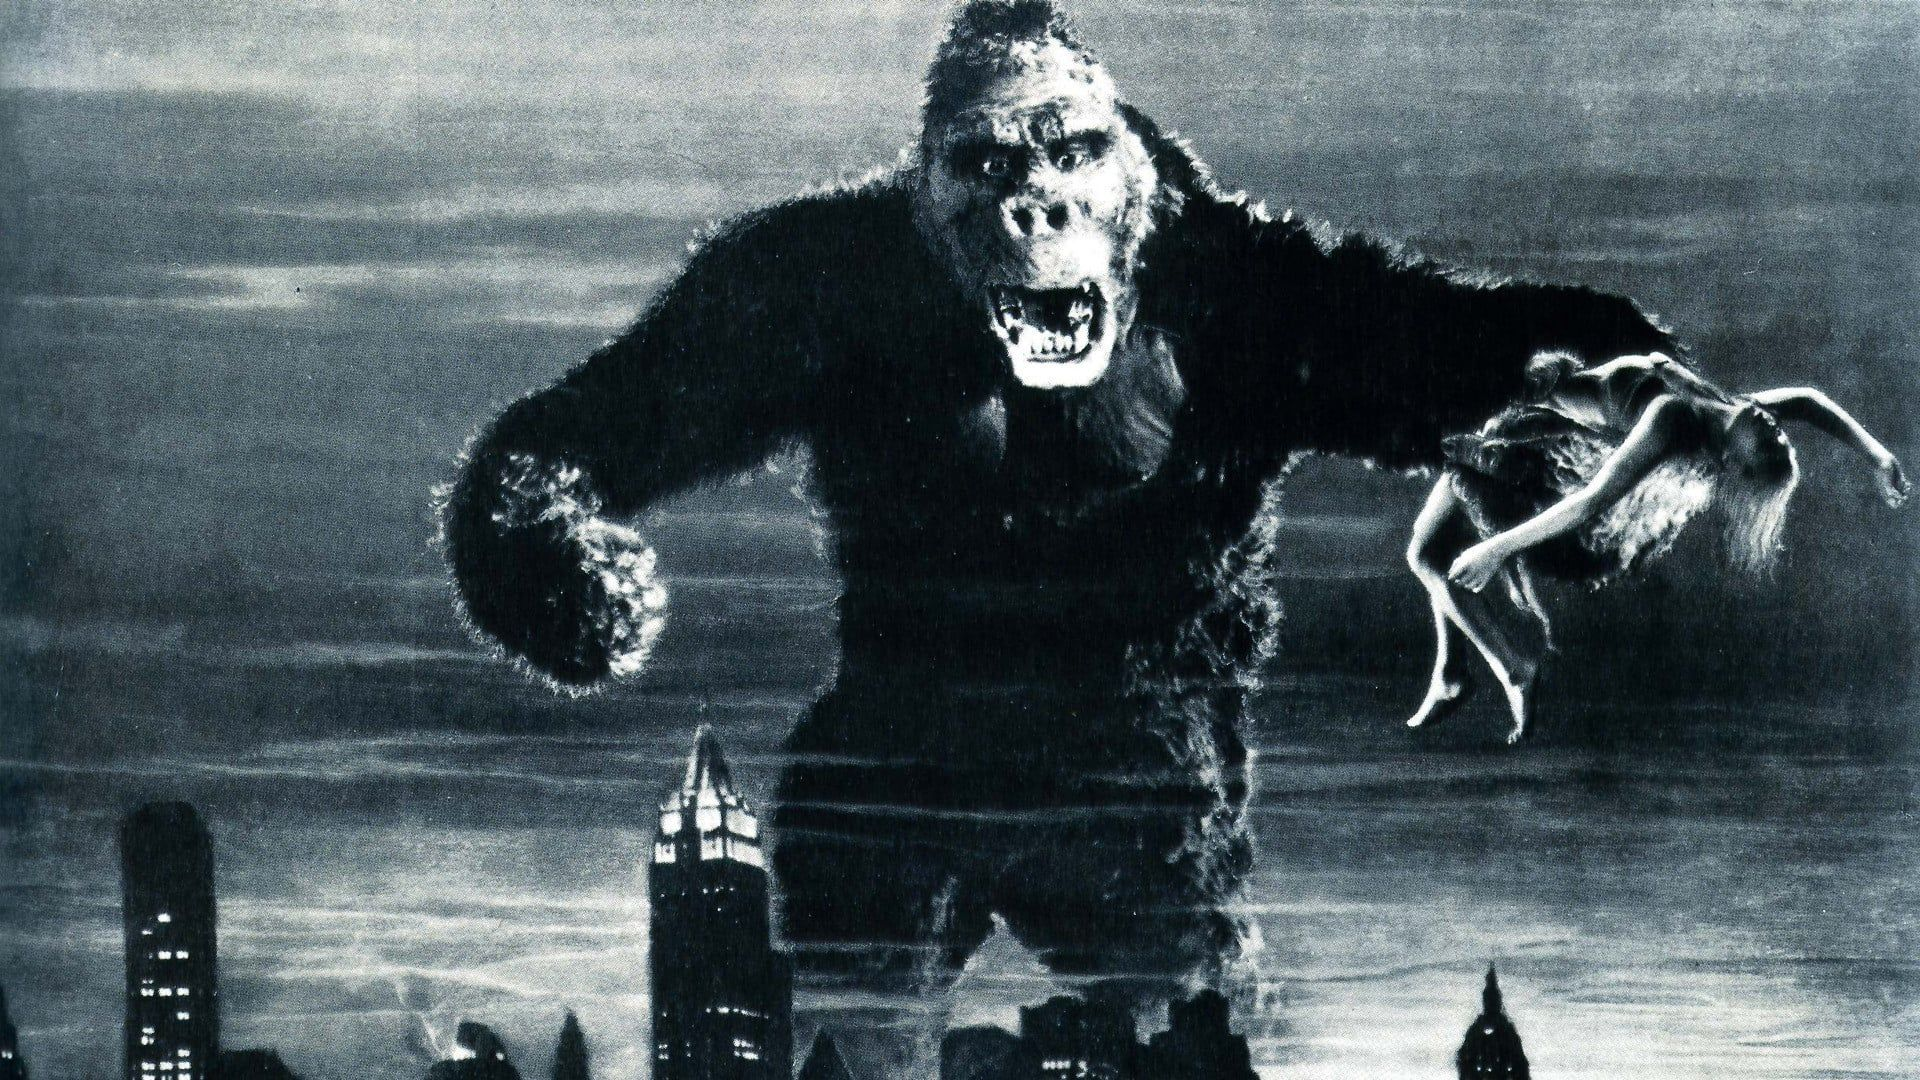 King Kong 1933 Cb01 Completo Italiano Altadefinizione Cinema Guarda King Kong Italiano 1933 Film Streaming Altadefinizione Cb01 King Kong Yorkie Cinema